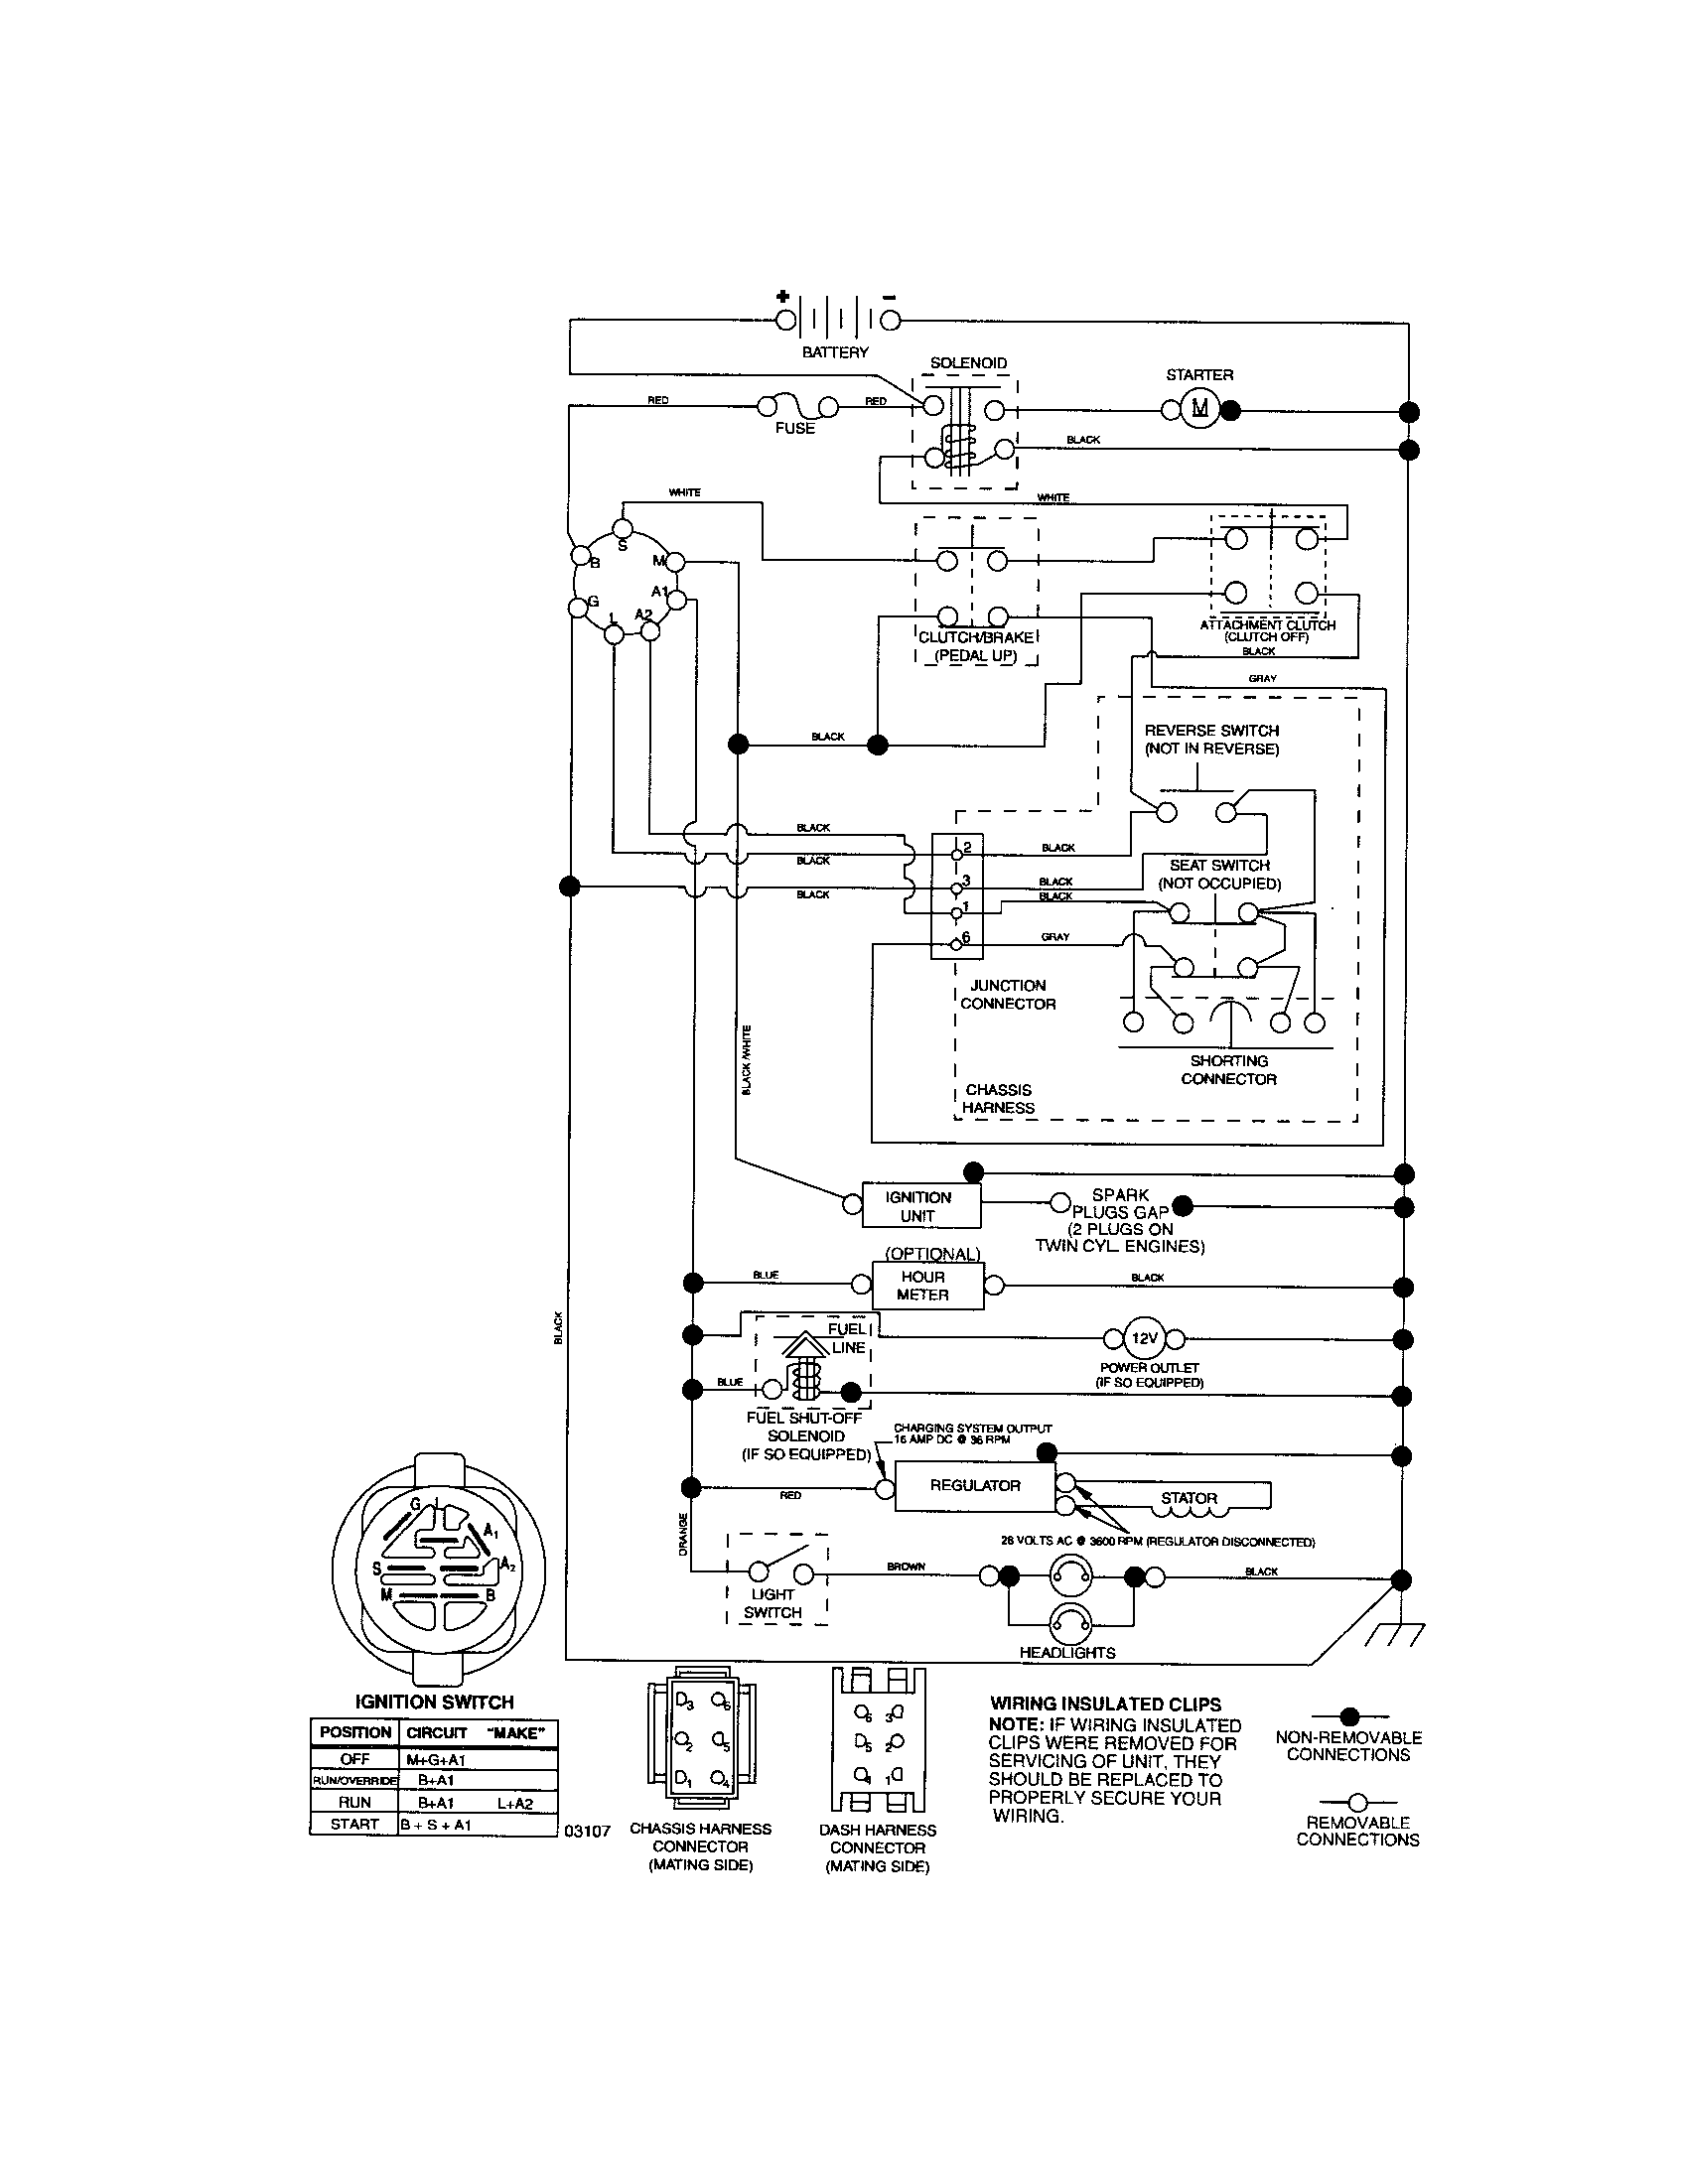 small resolution of craftsman riding mower electrical diagram wiring diagram craftsman craftsman wiring diagrams